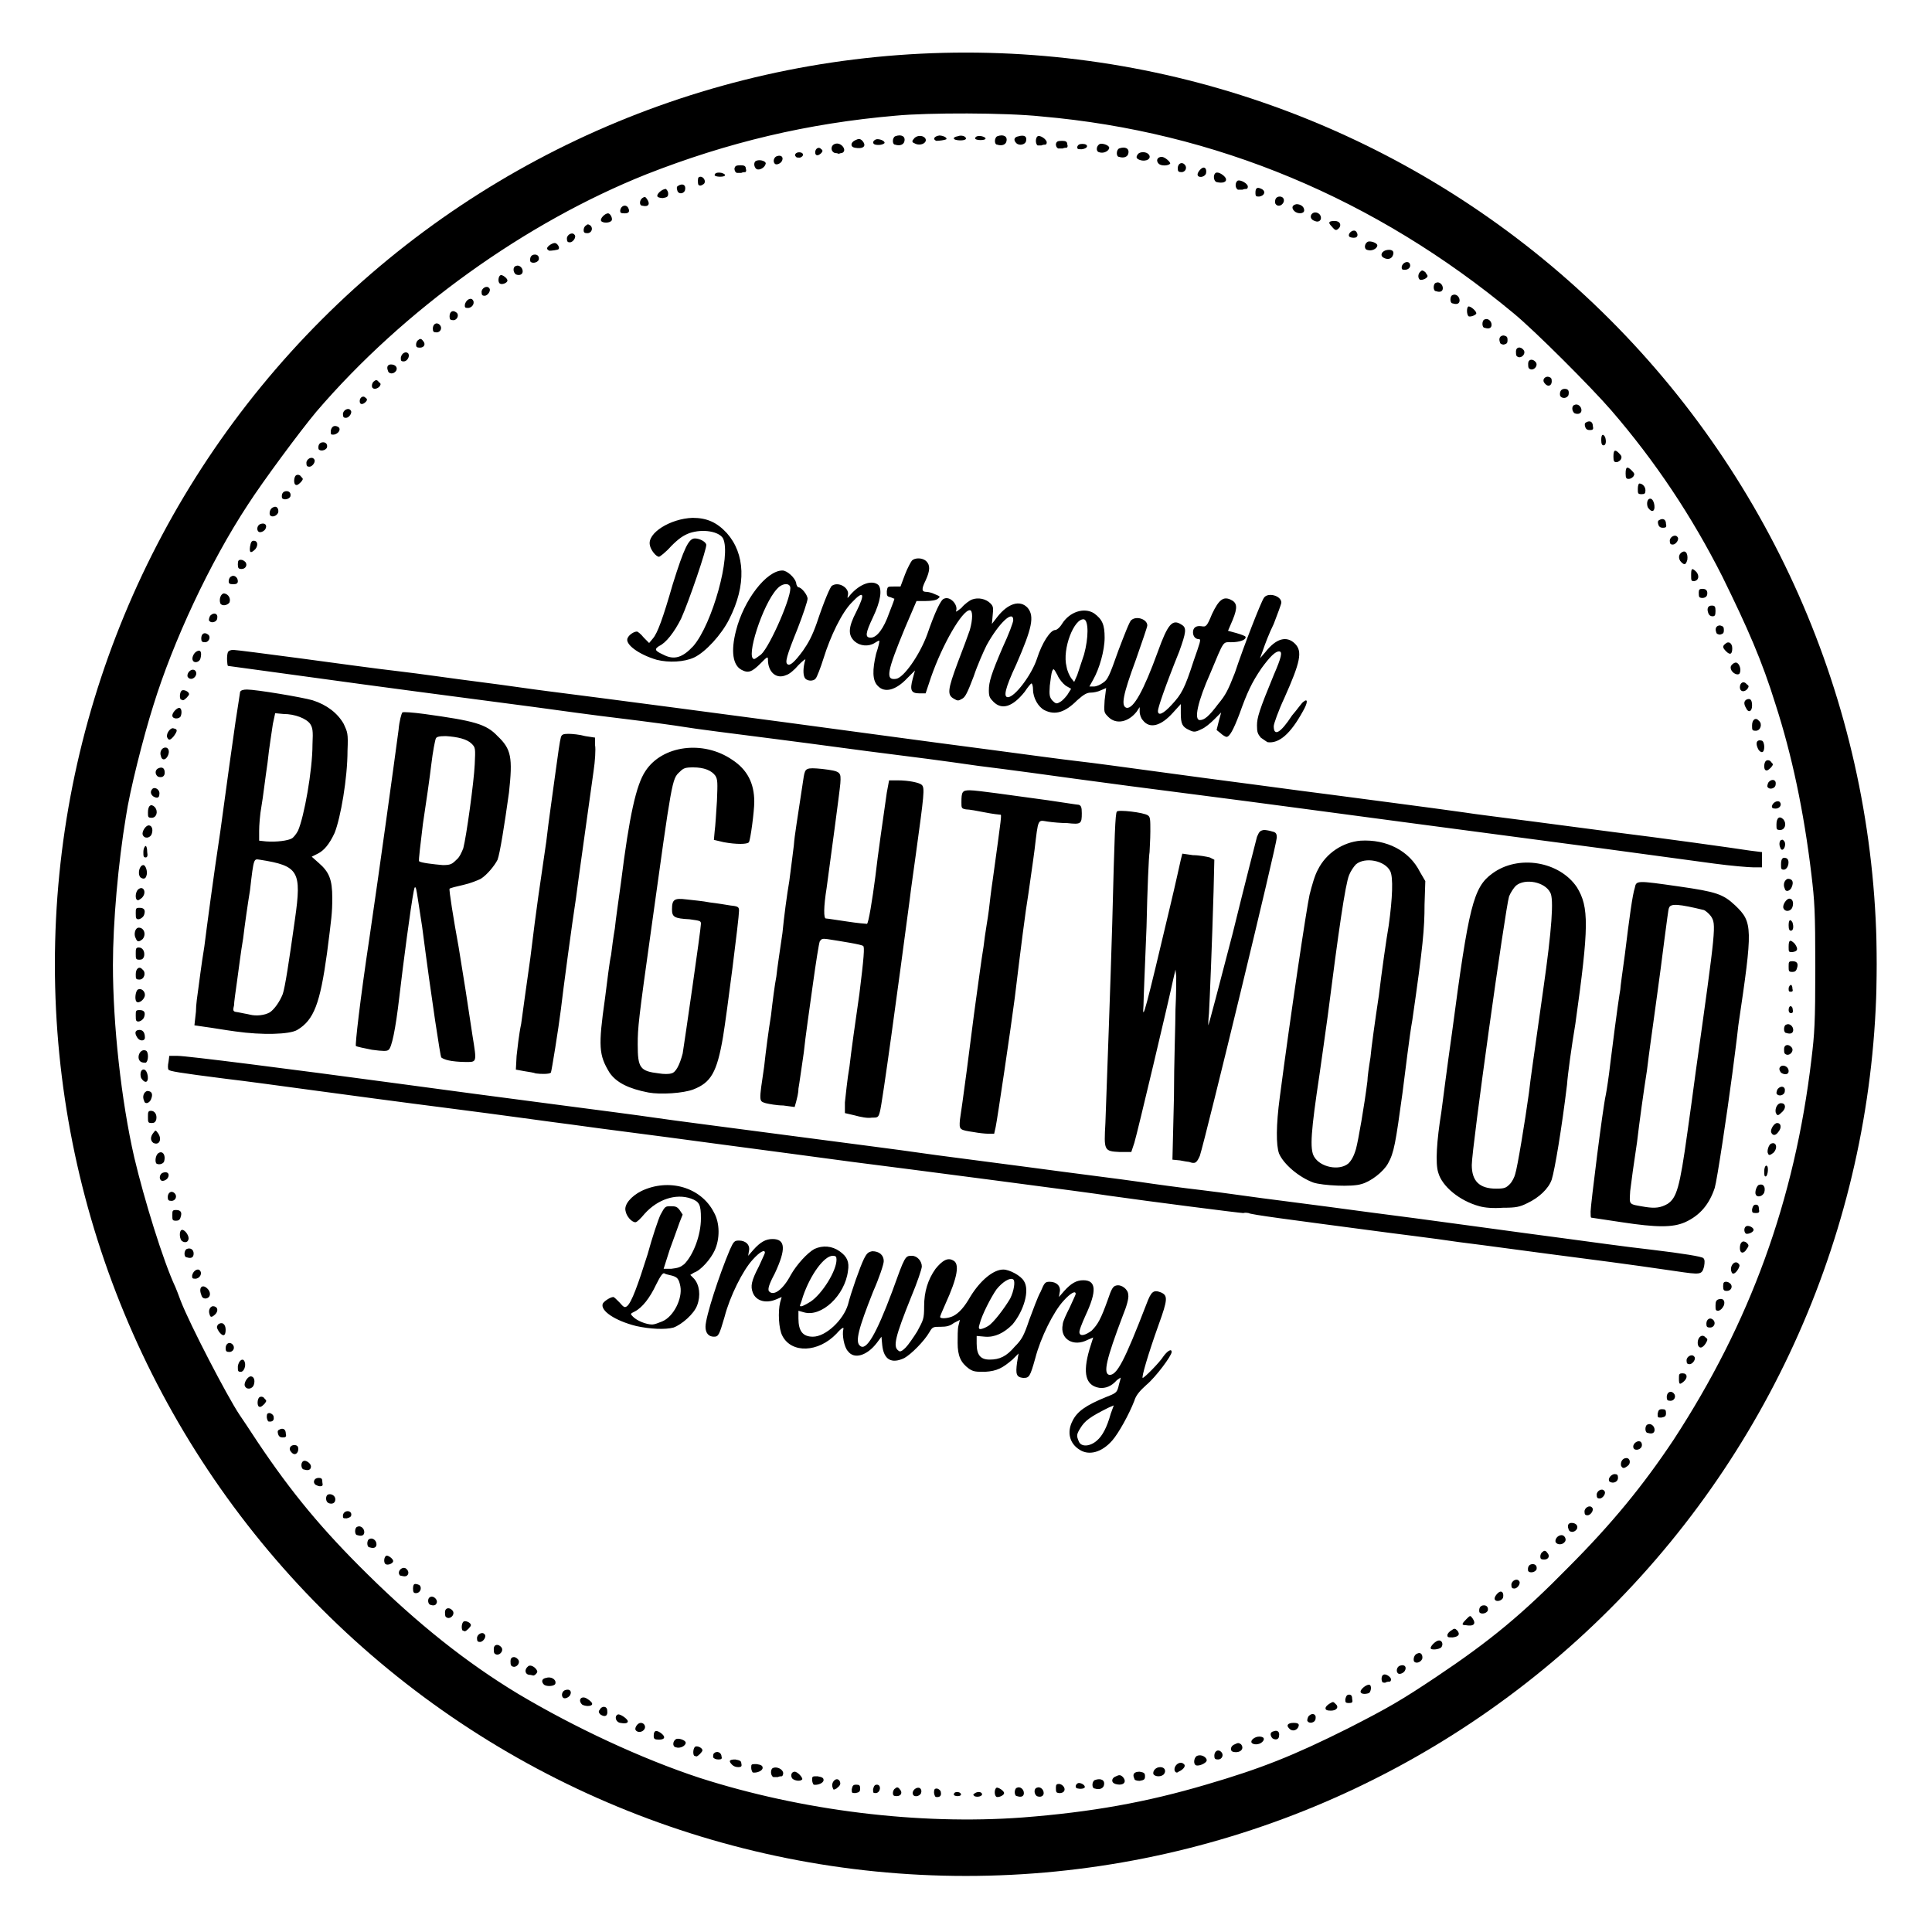 Brightwood Brewery